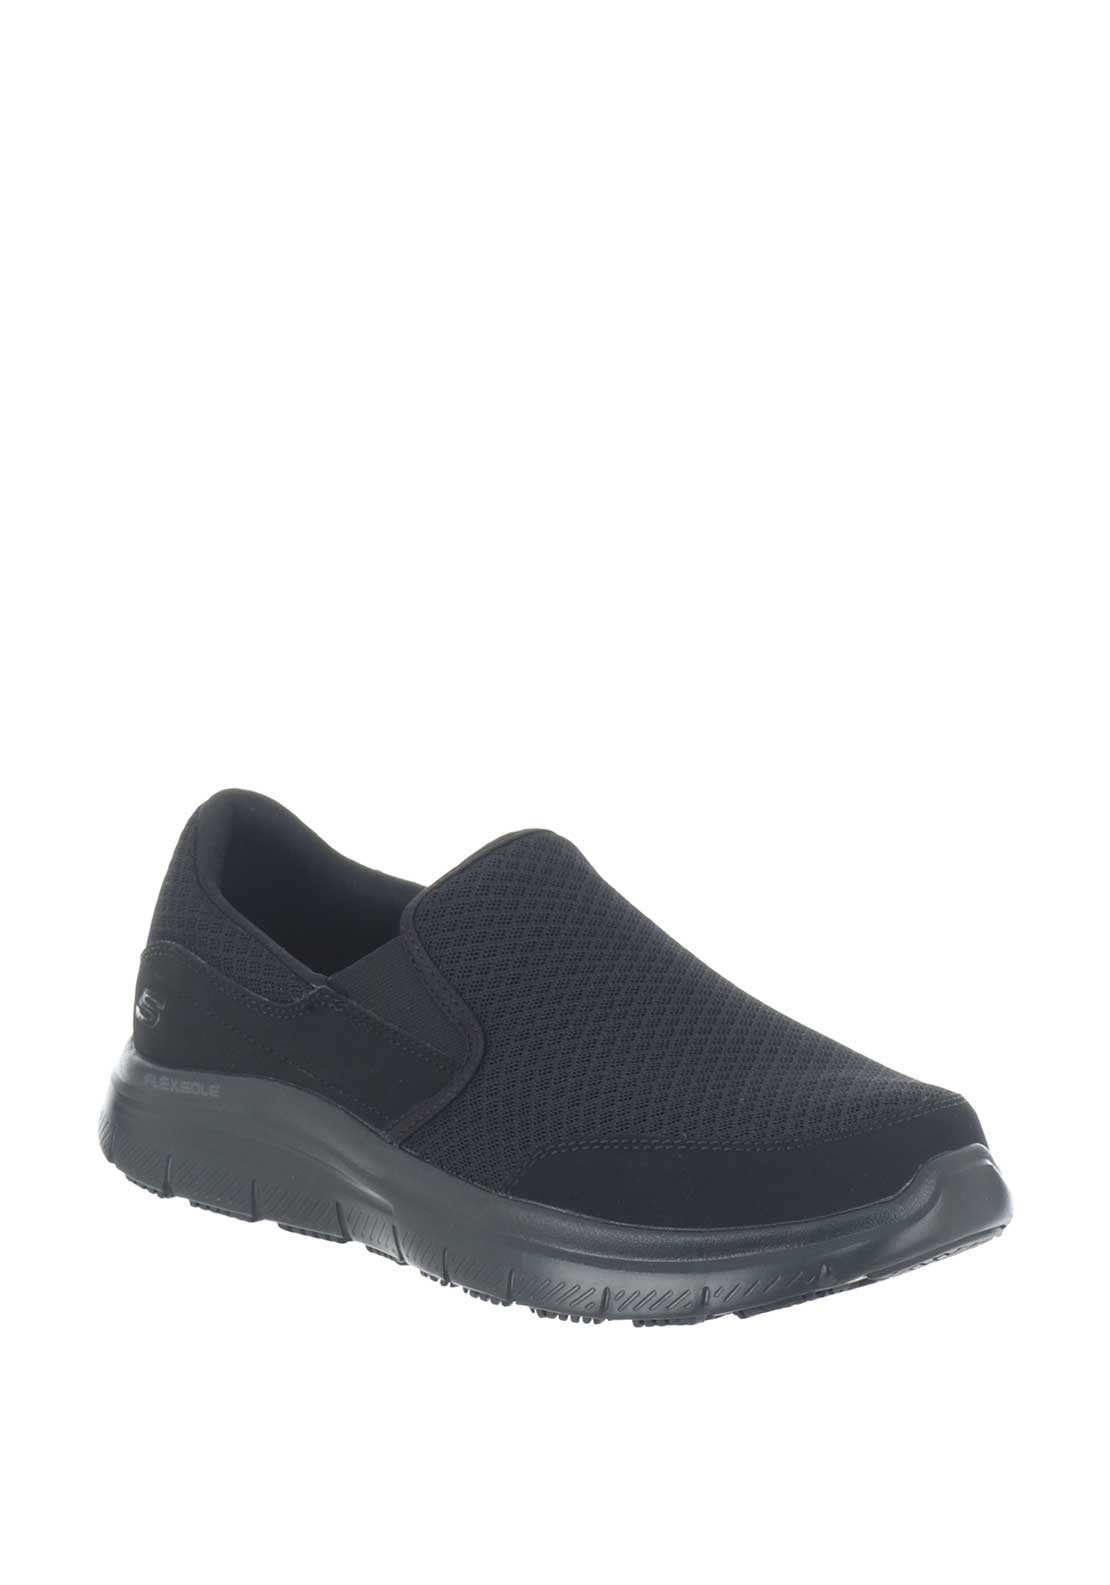 black memory foam skechers